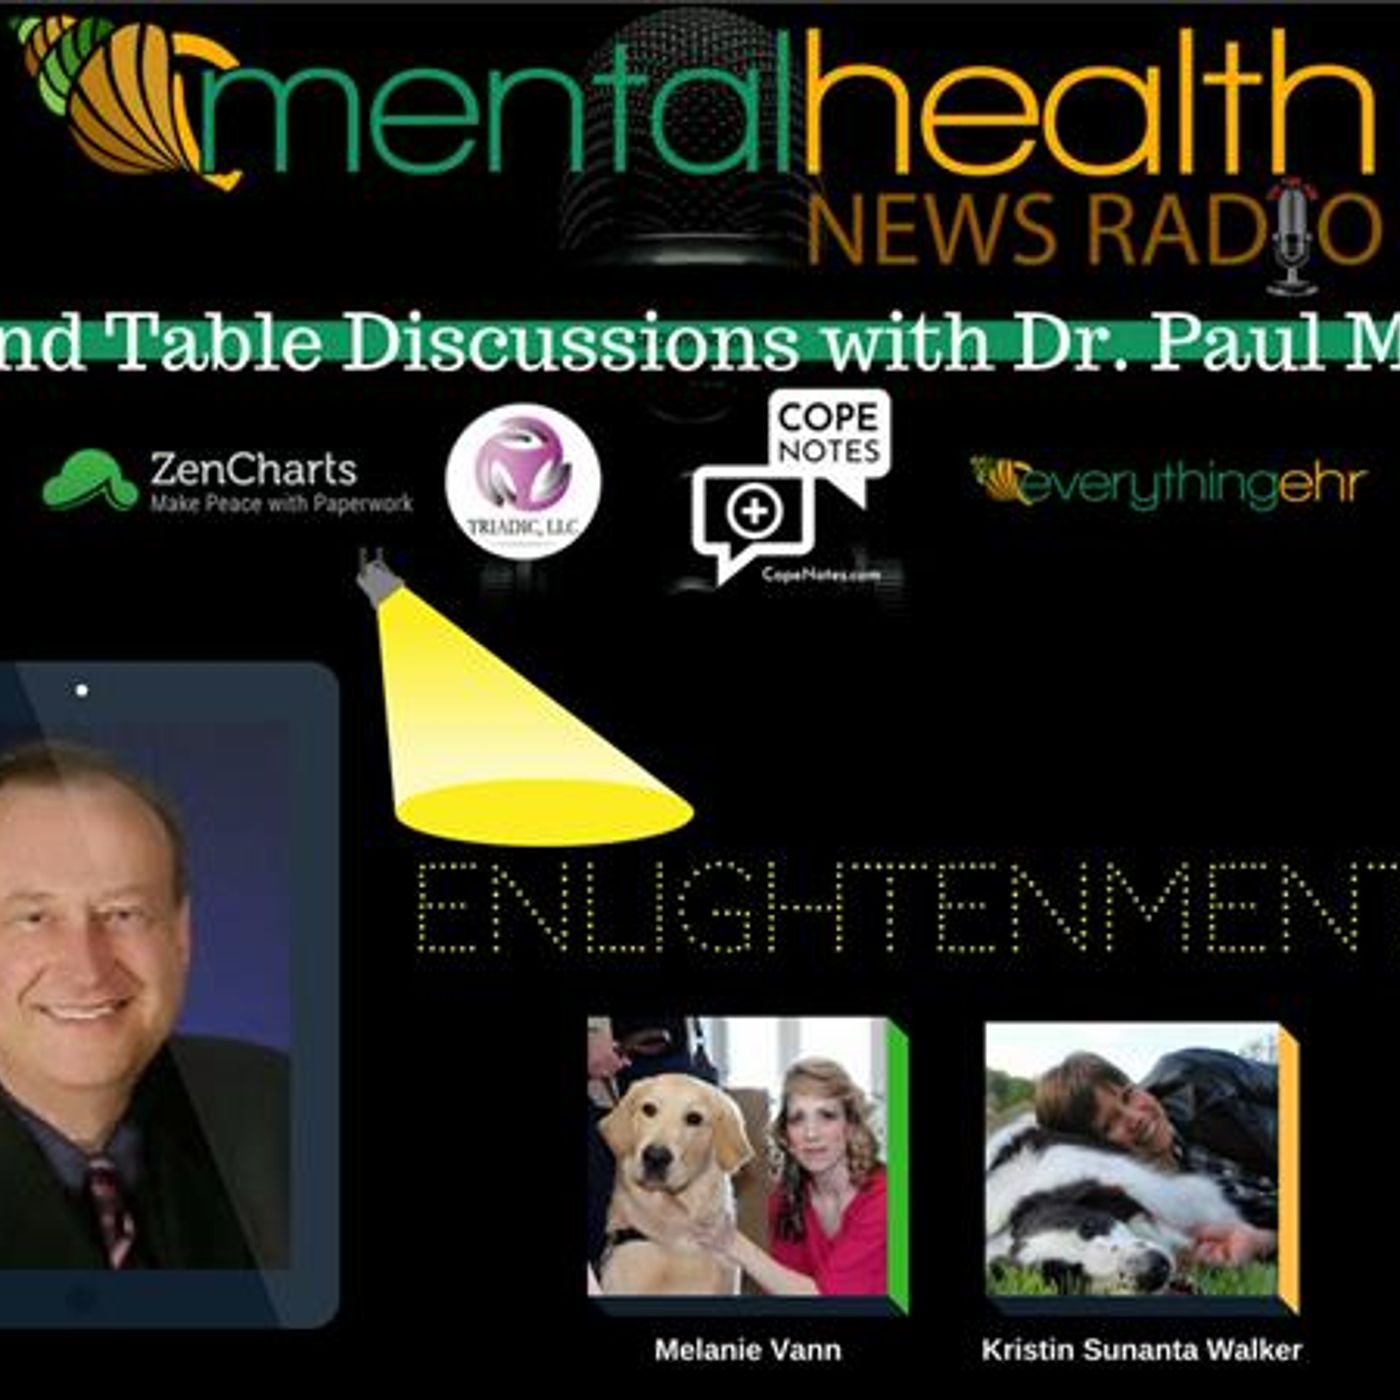 Mental Health News Radio - Round Table Discussions with Dr. Paul Meier: Enlightenment